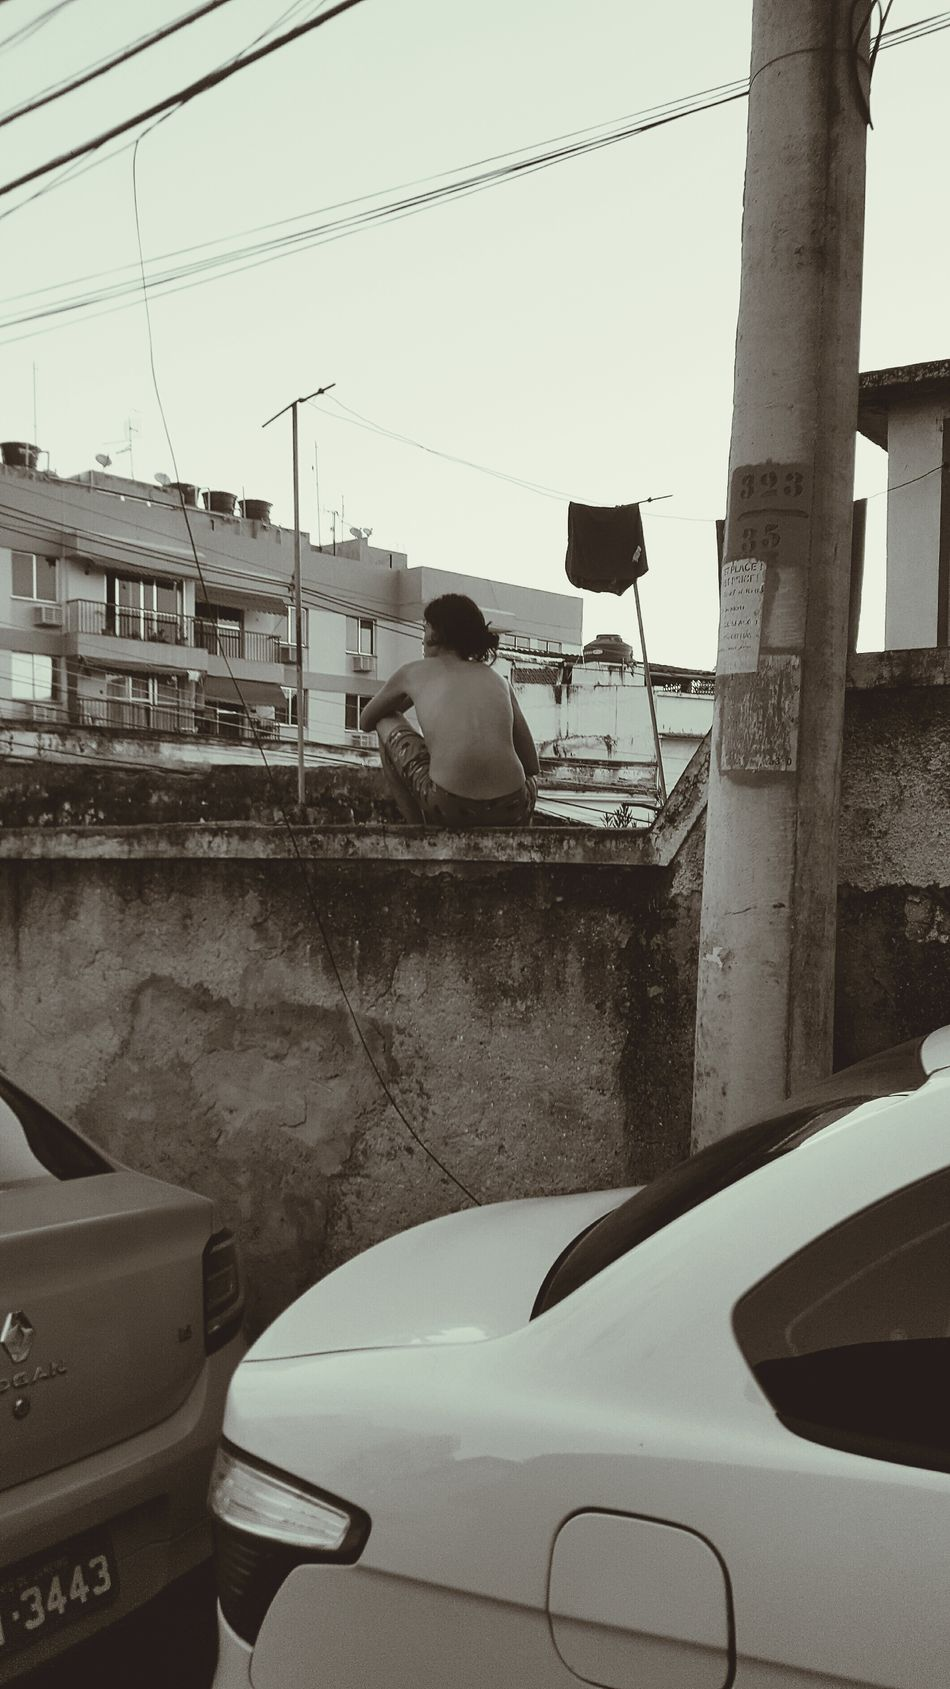 Watching Favela Rio De Janeiro Brazil Poverty Struggle Black And White Wall Sitting Man Hope Dreaming